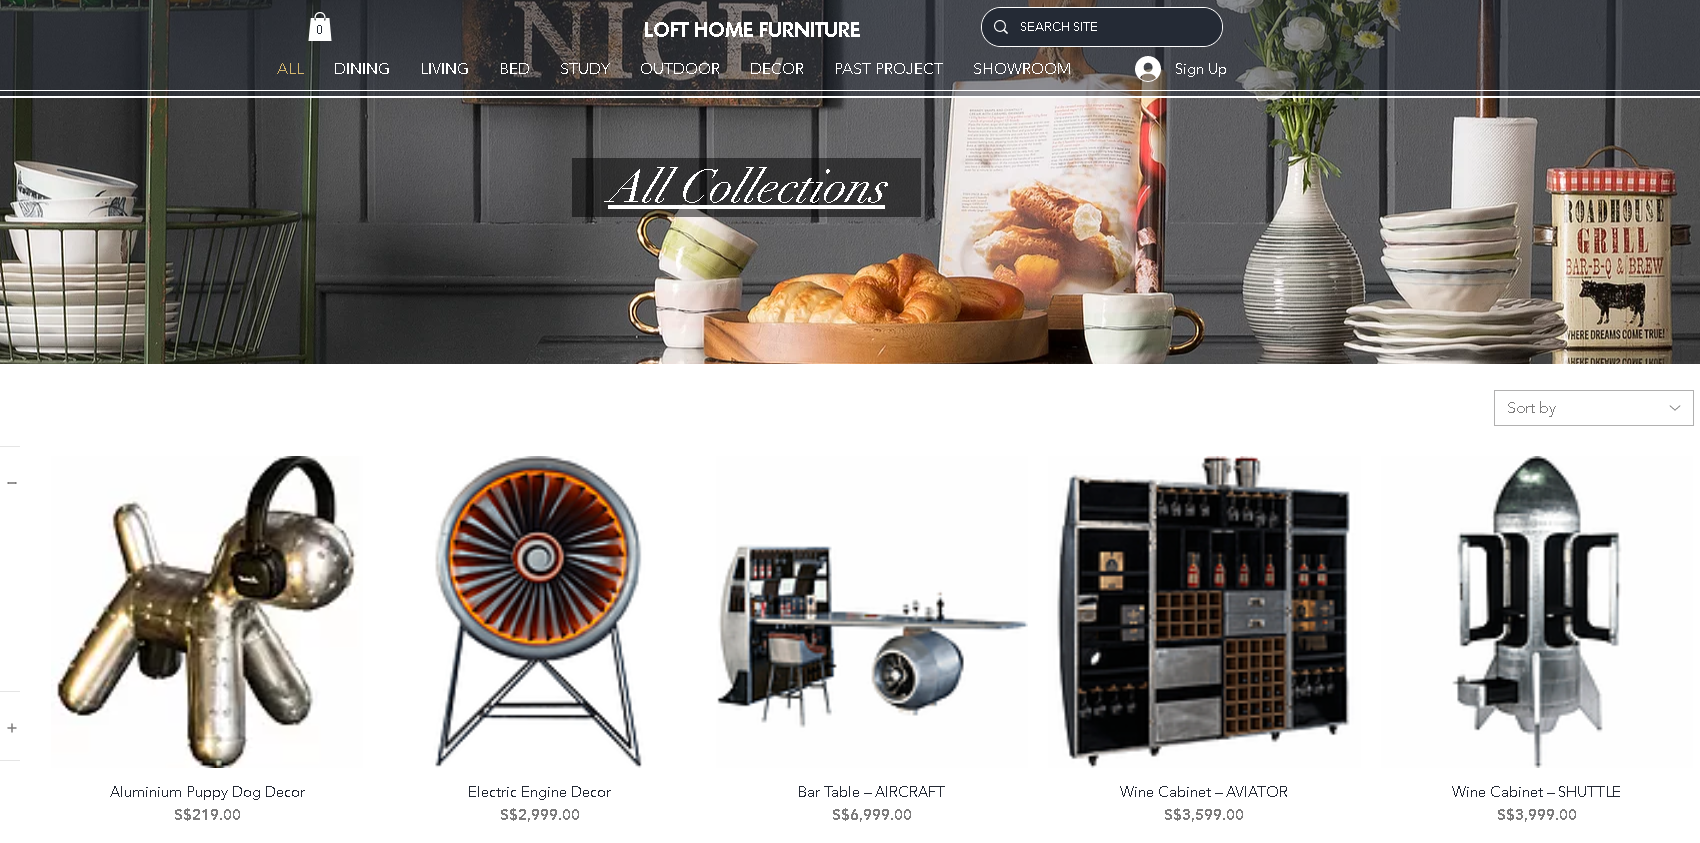 Where to buy furniture online in Singapore - Loft Home Furniture